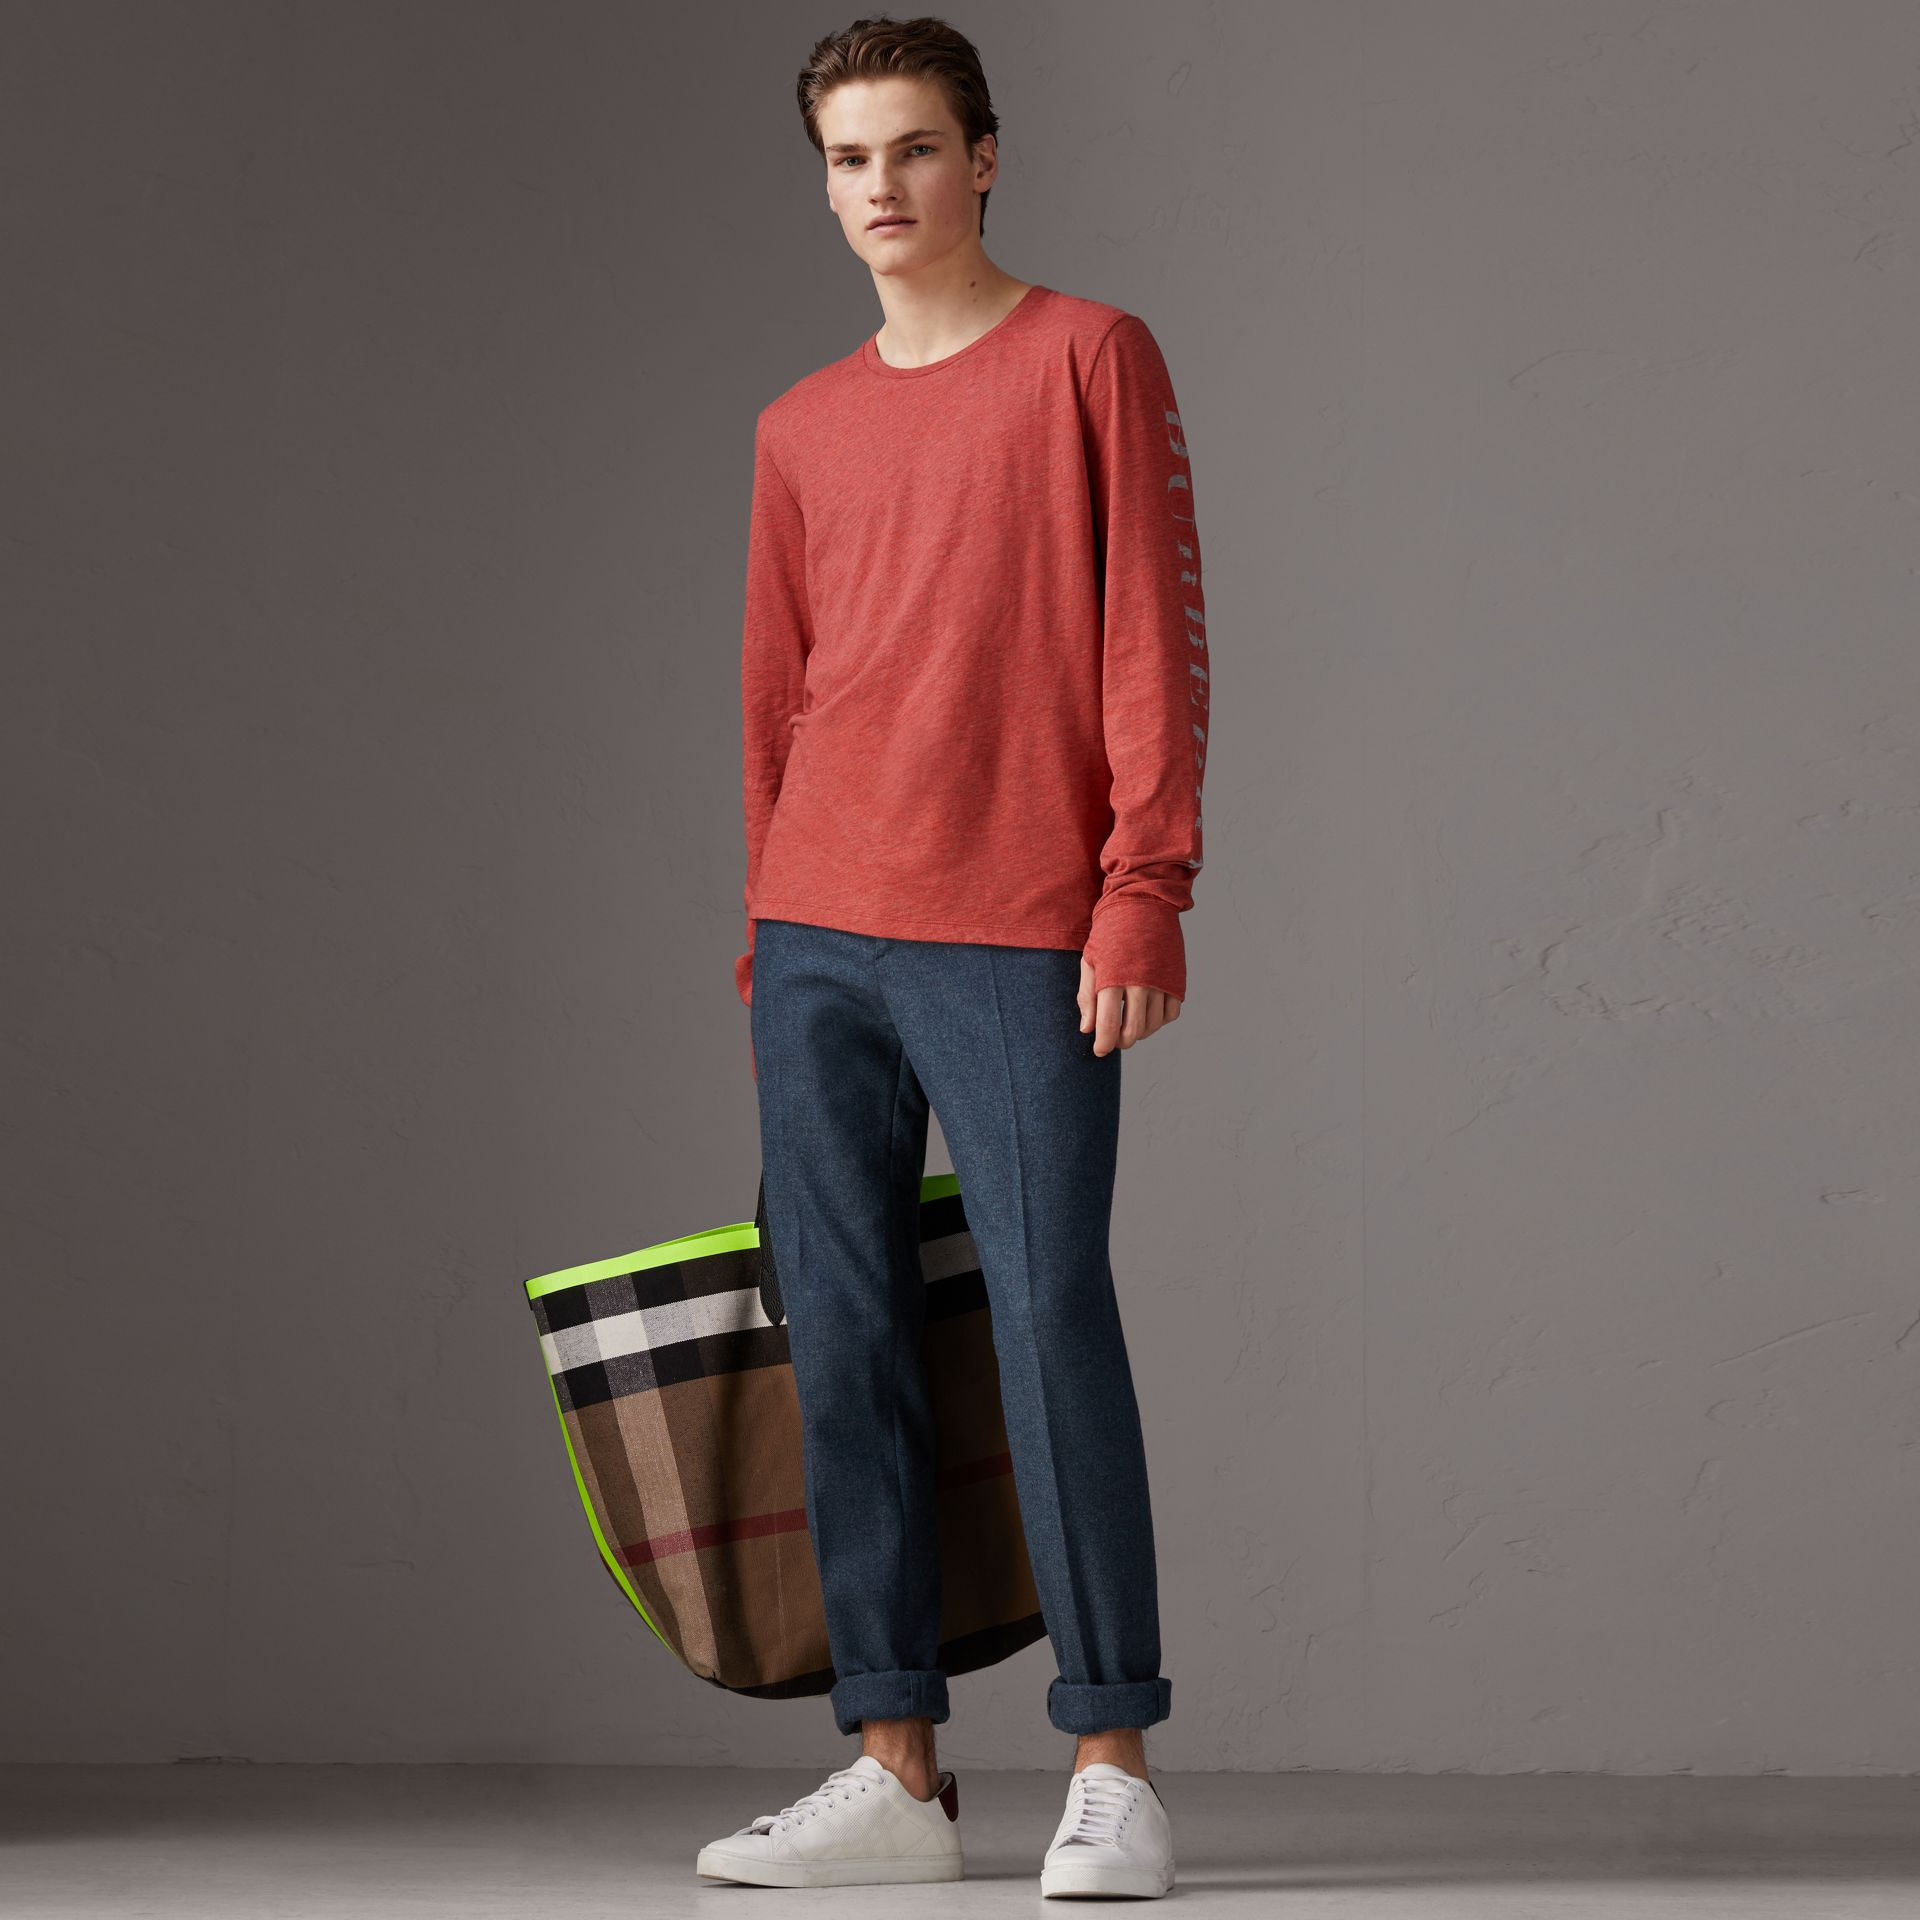 Devoré Jersey Top in Bright Red Melange - Men | Burberry United Kingdom - gallery image 0